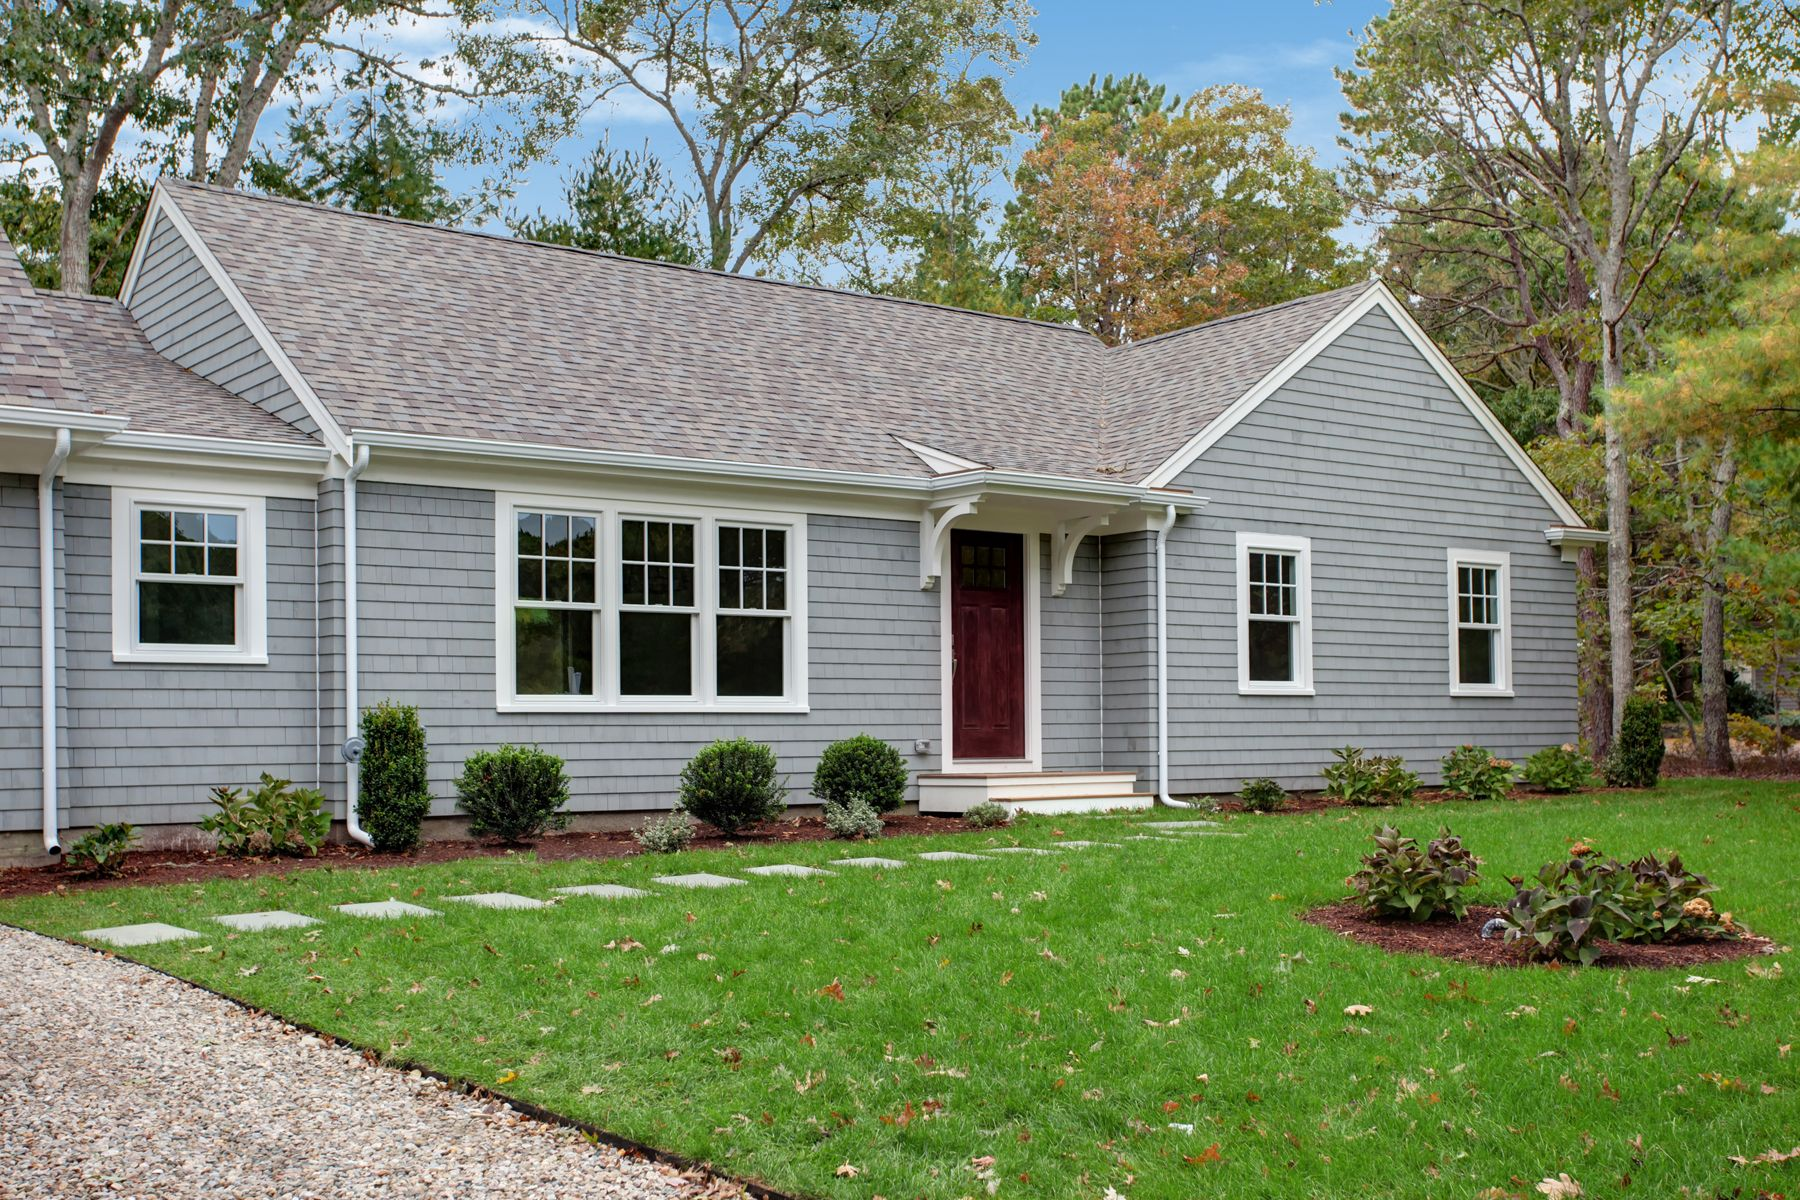 Single Family Home for Active at Open Concept Living 4 By-The-Green Way Mashpee, Massachusetts 02639 United States